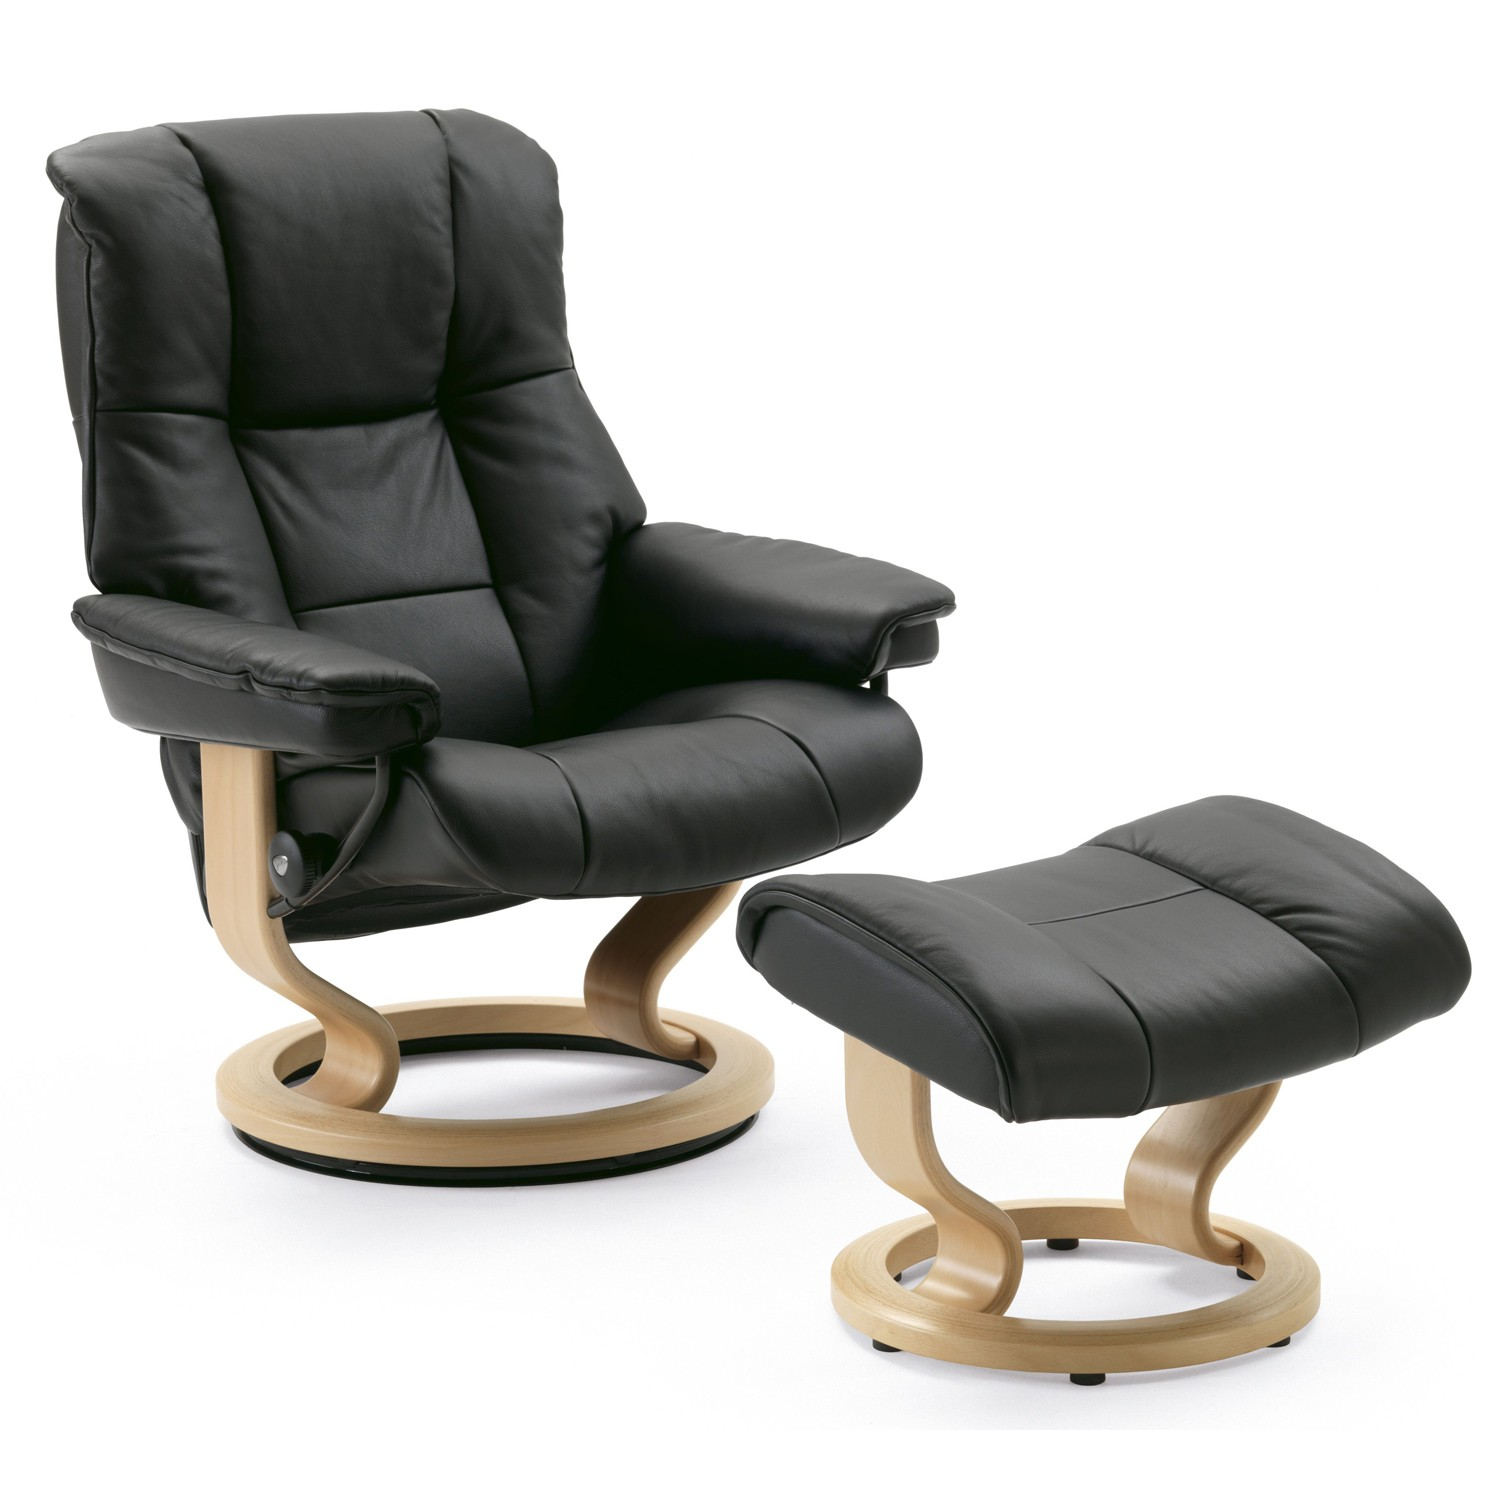 stress free chair ameriglide lift stressless mayfair small and stool leekes